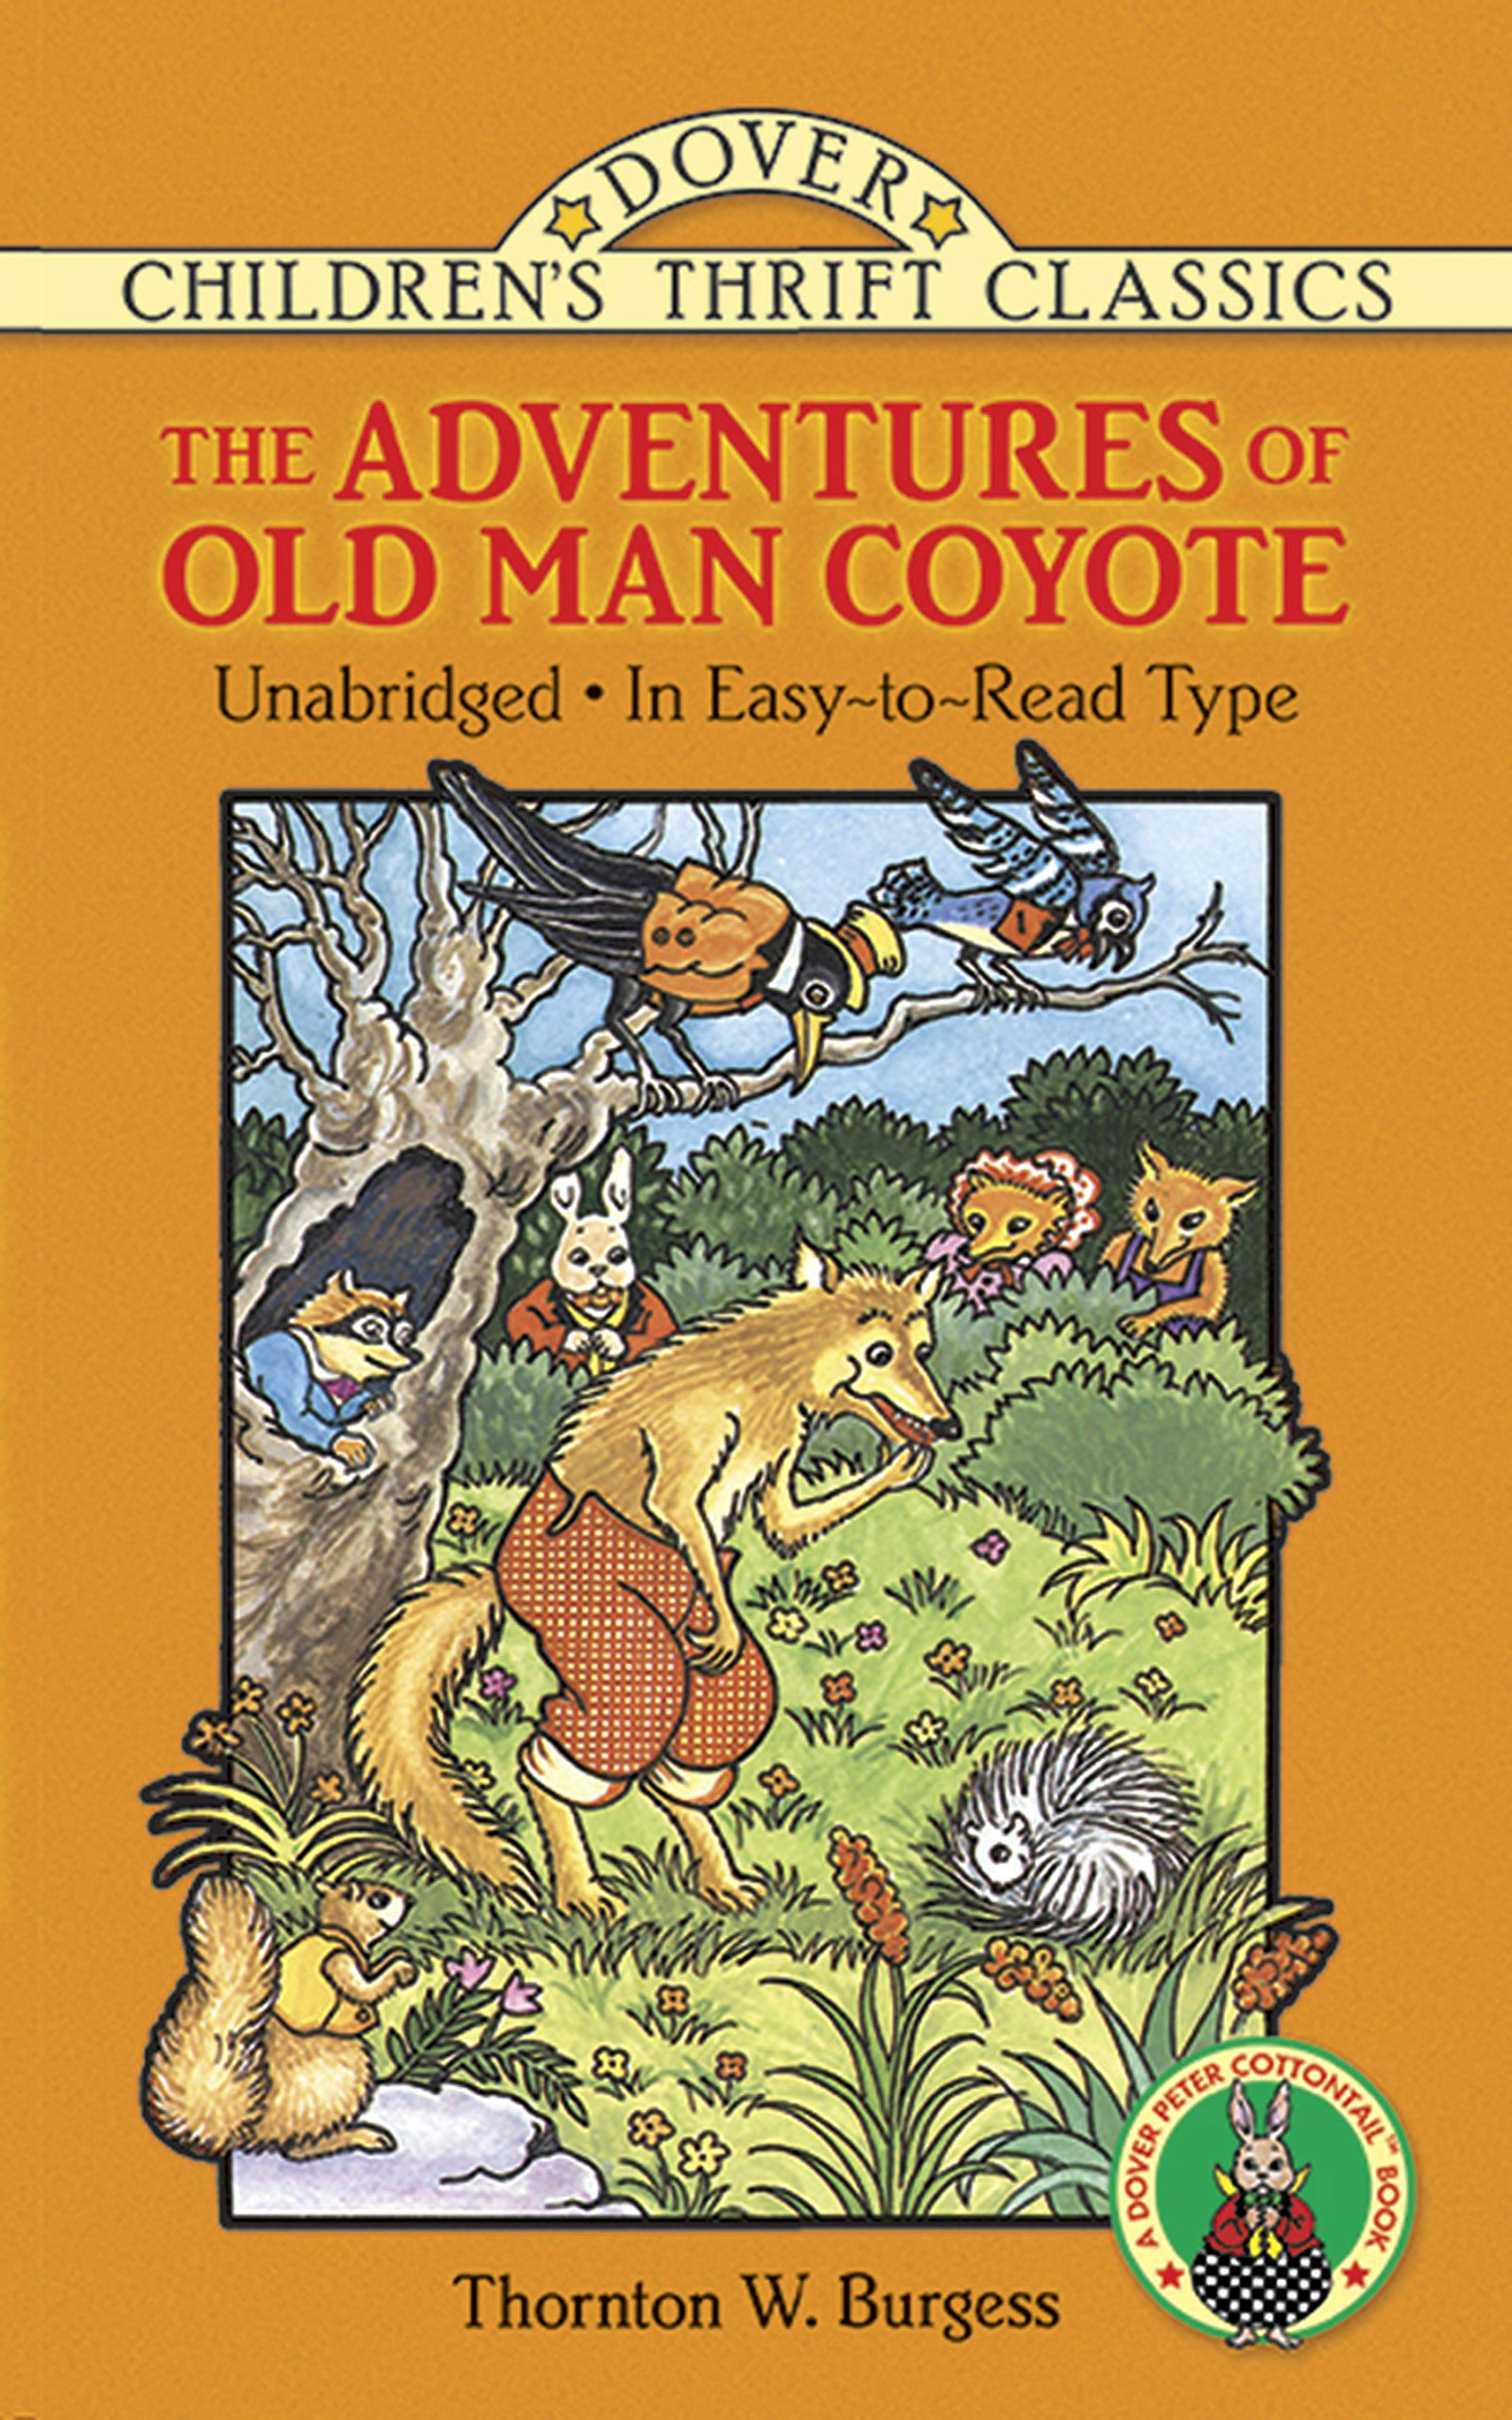 The Adventures of Old Man Coyote (Dover Children's Thrift Classics)